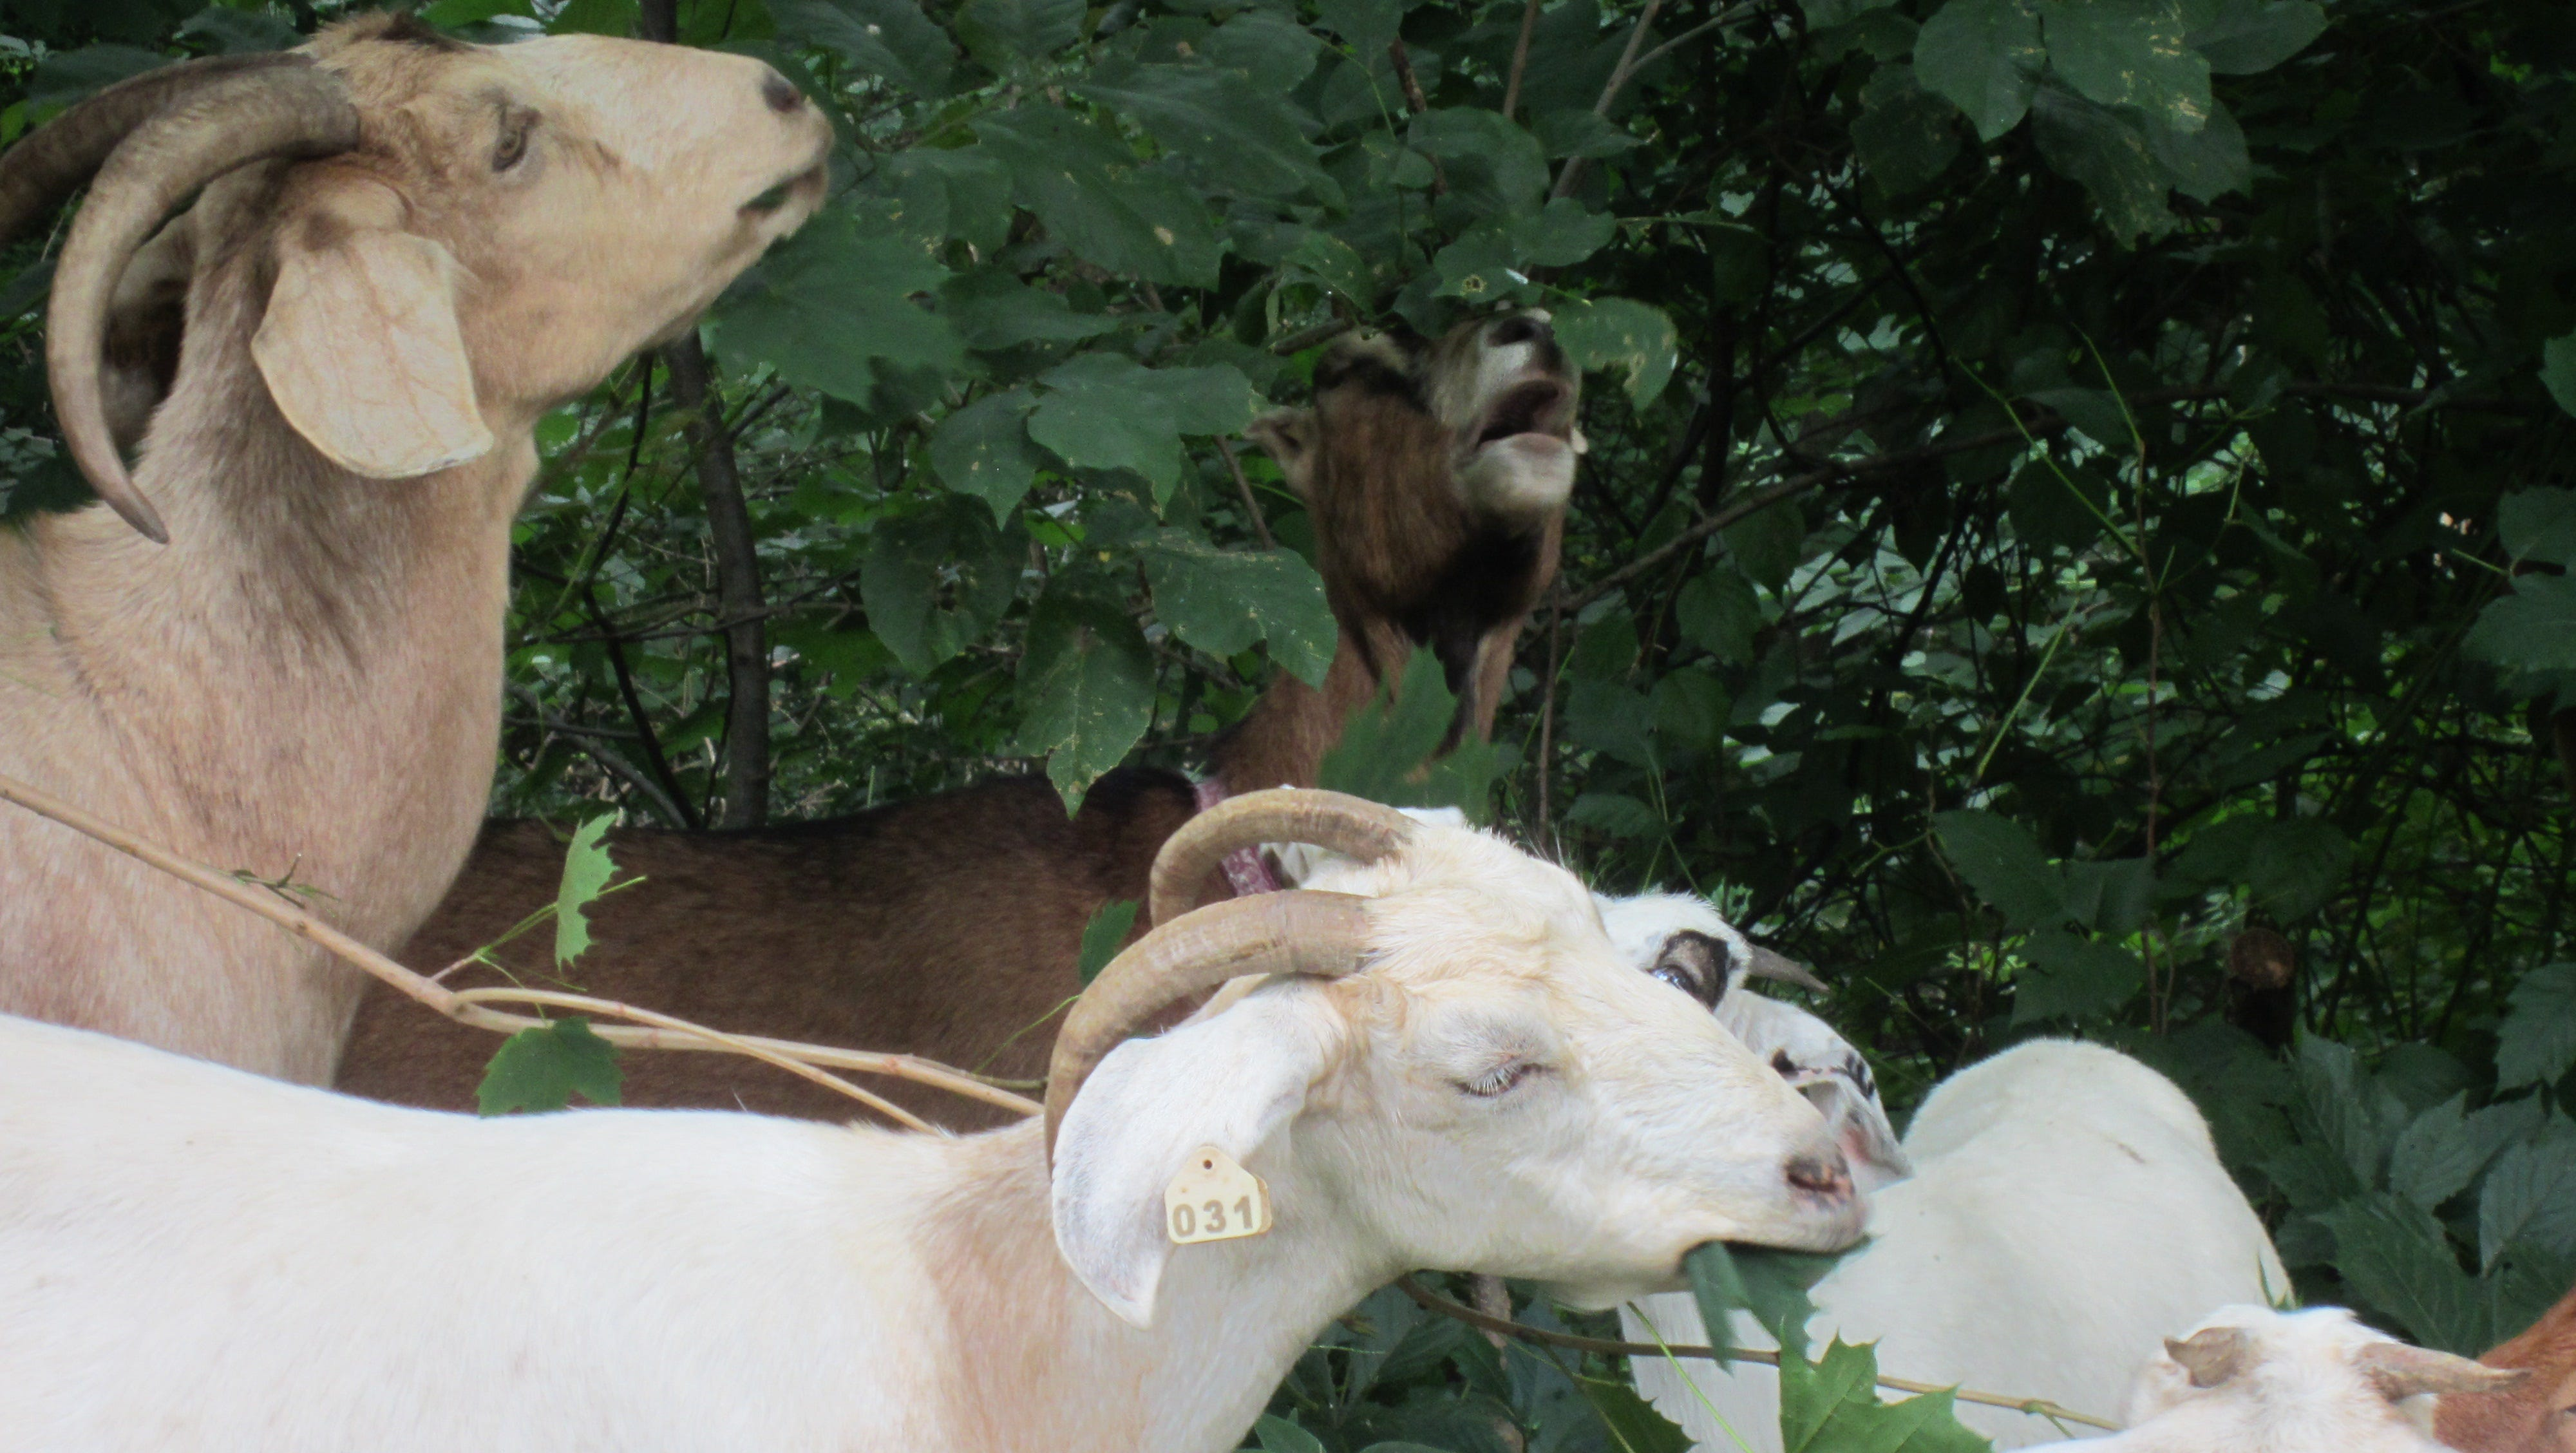 Goats help clear a woody area on Haverford Campus.